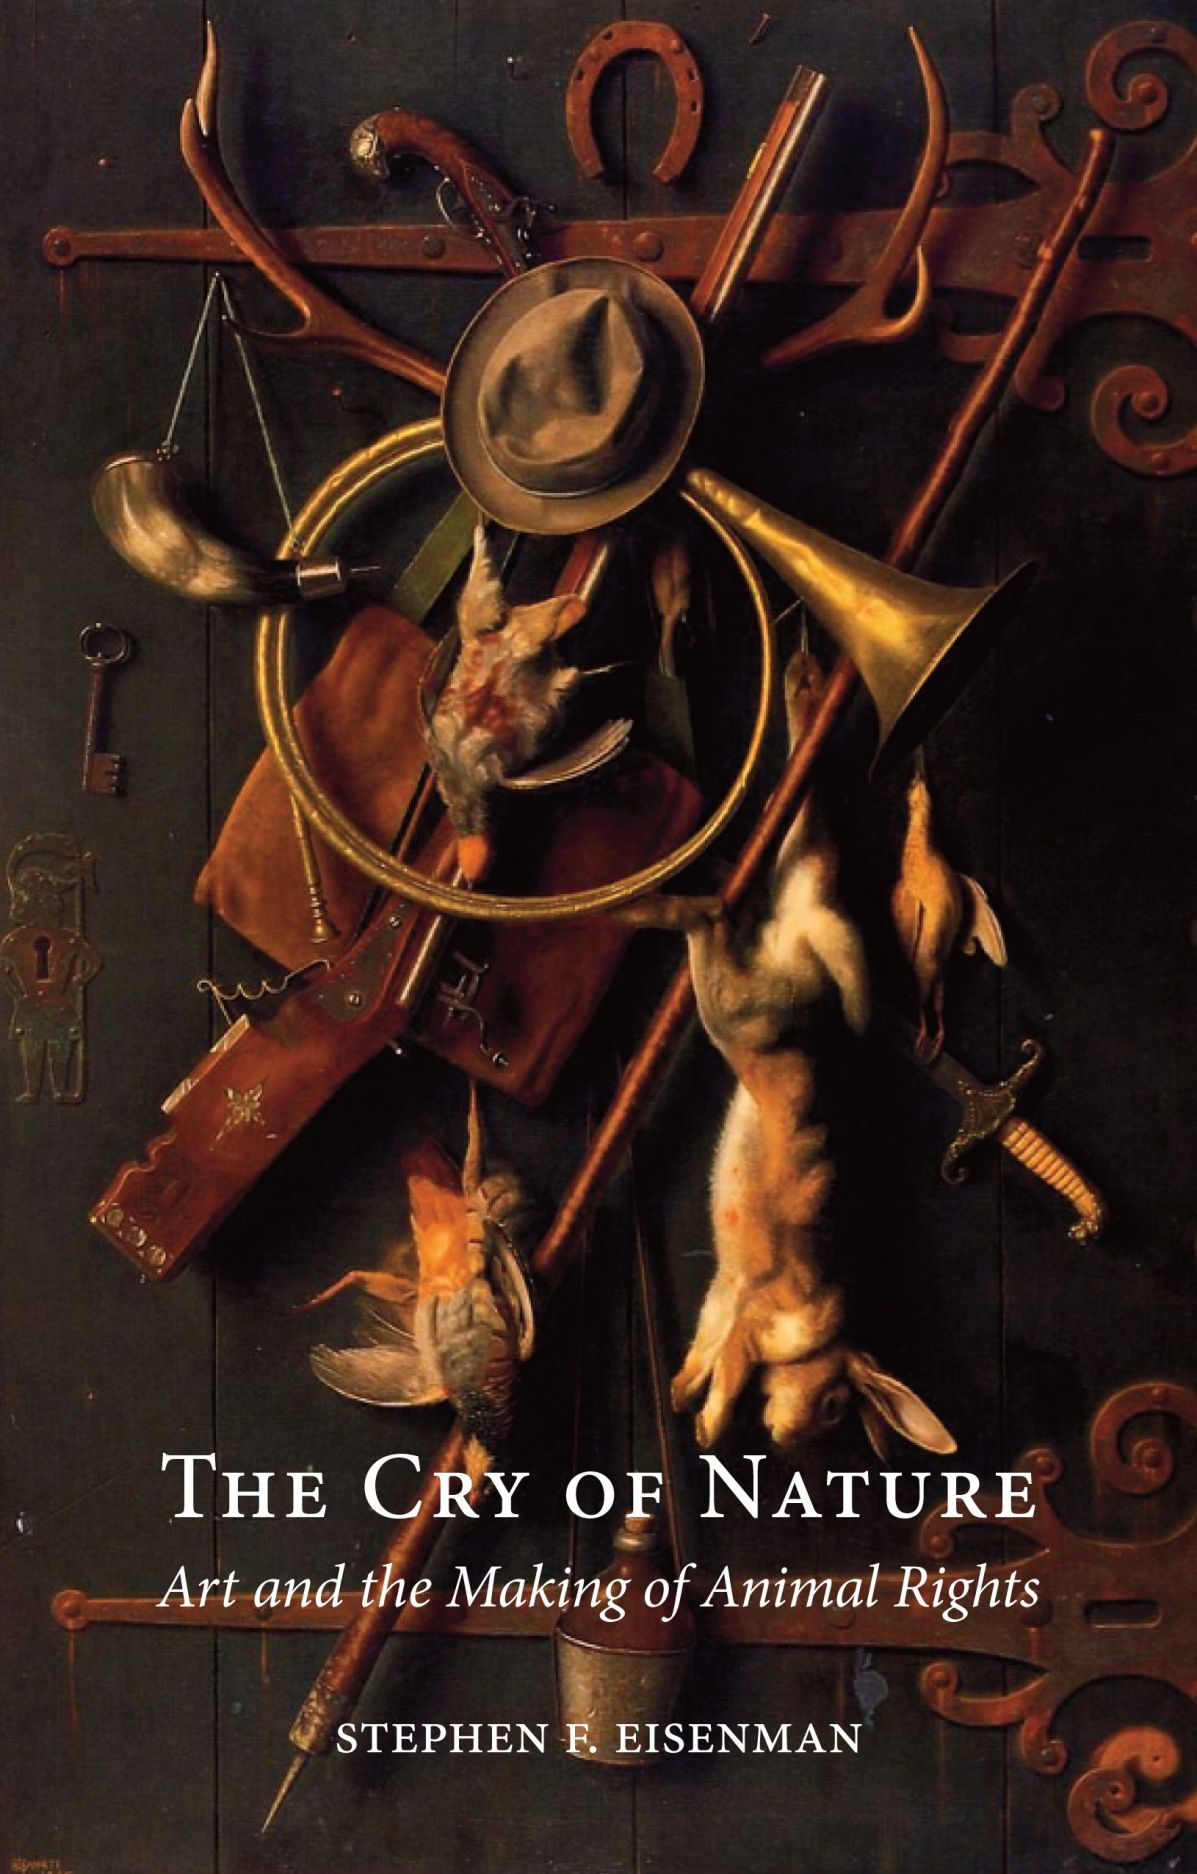 The Cry of Nature: Art and the Making of Animal Rights